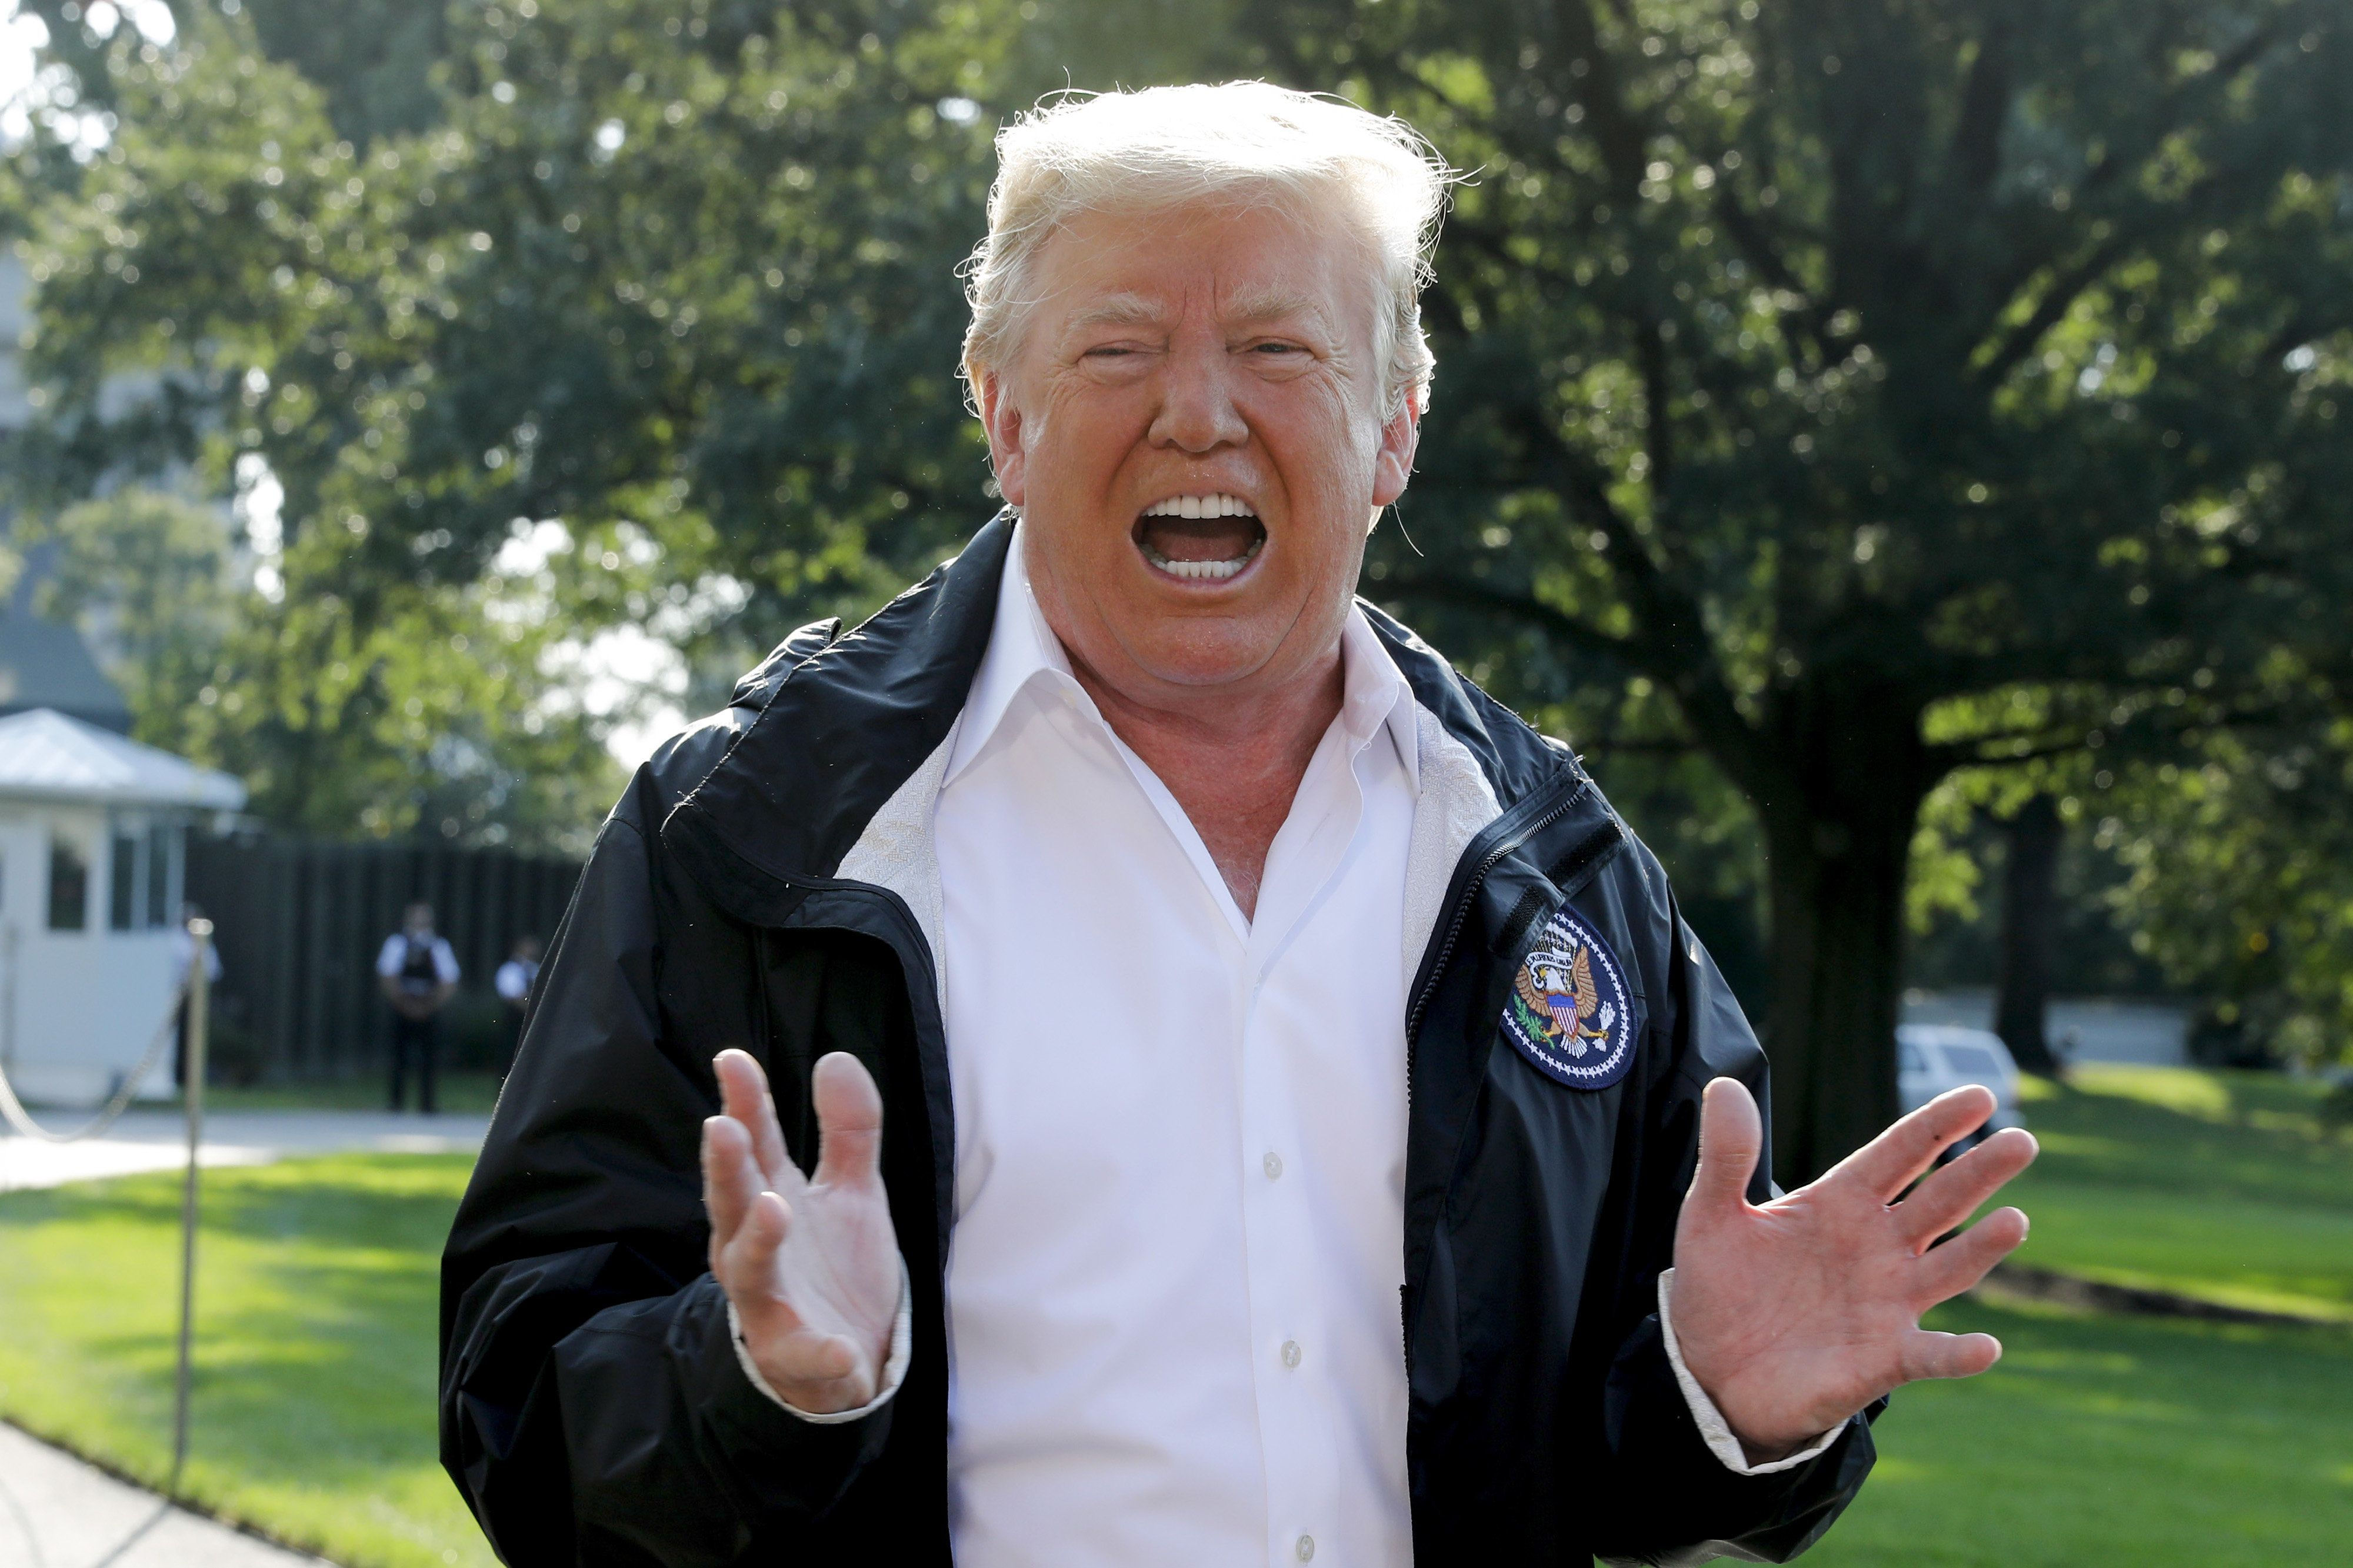 U.S. President Donald Trump speaks to members of the media before boarding Marine One on the South Lawn of the White House in Washington, D.C., U.S., on Wednesday, Sept. 19, 2018. Trump said he wants to hear from the woman who accuses Supreme Court nominee Brett Kavanaugh of sexual assault, saying it would be 'unfortunate' if she doesn't testify before a Senate committee. Photographer: Yuri Gripas/Bloomberg via Getty Images